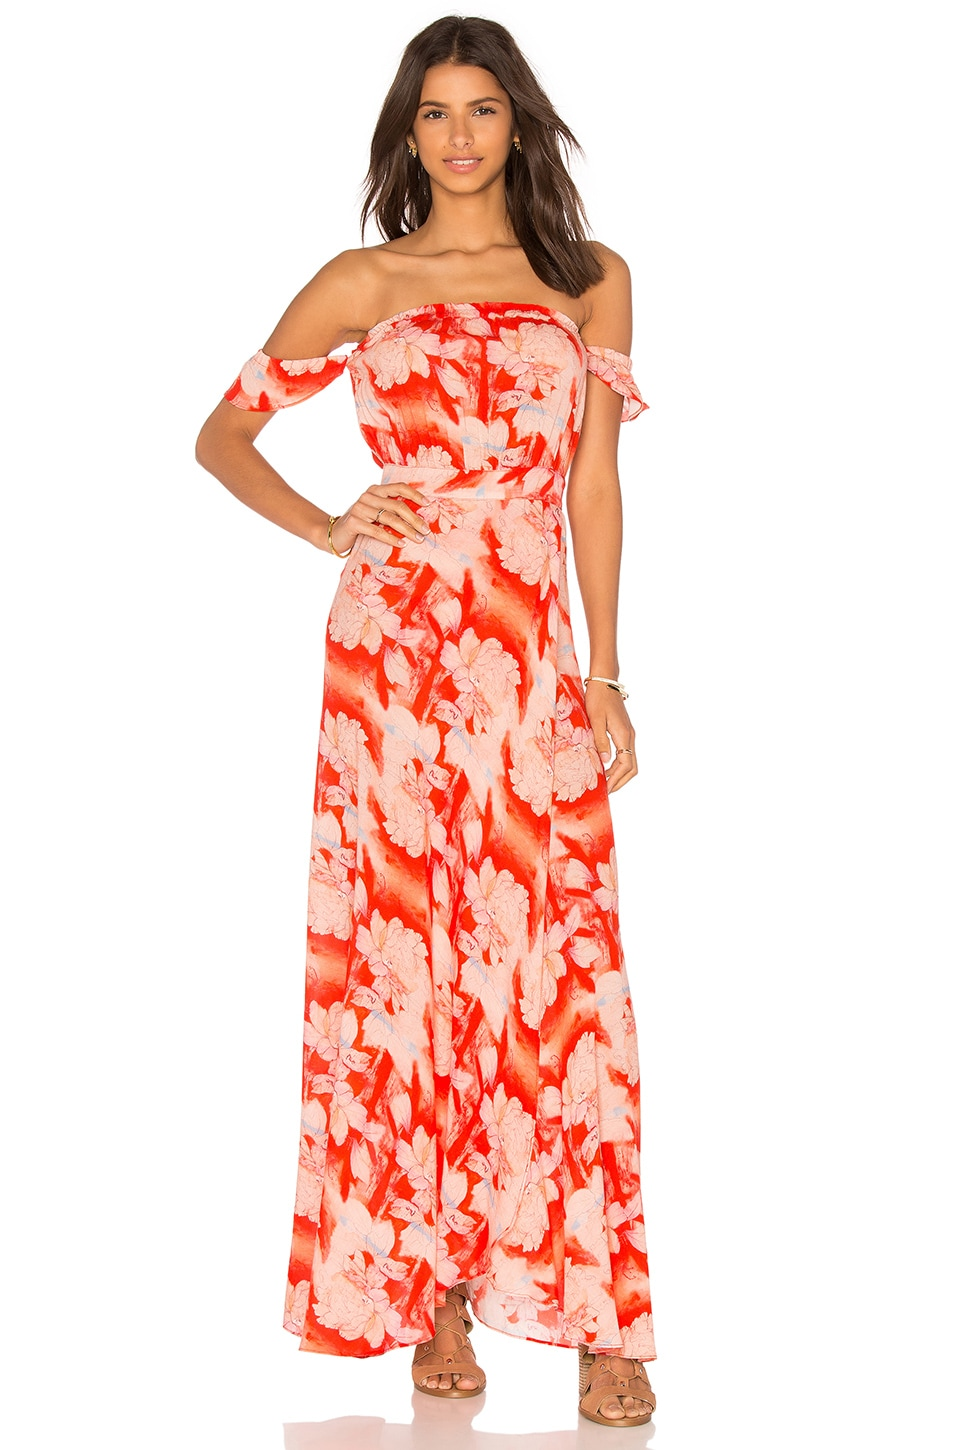 FLYNN SKYE Bella Dress in Flaming Moonshire